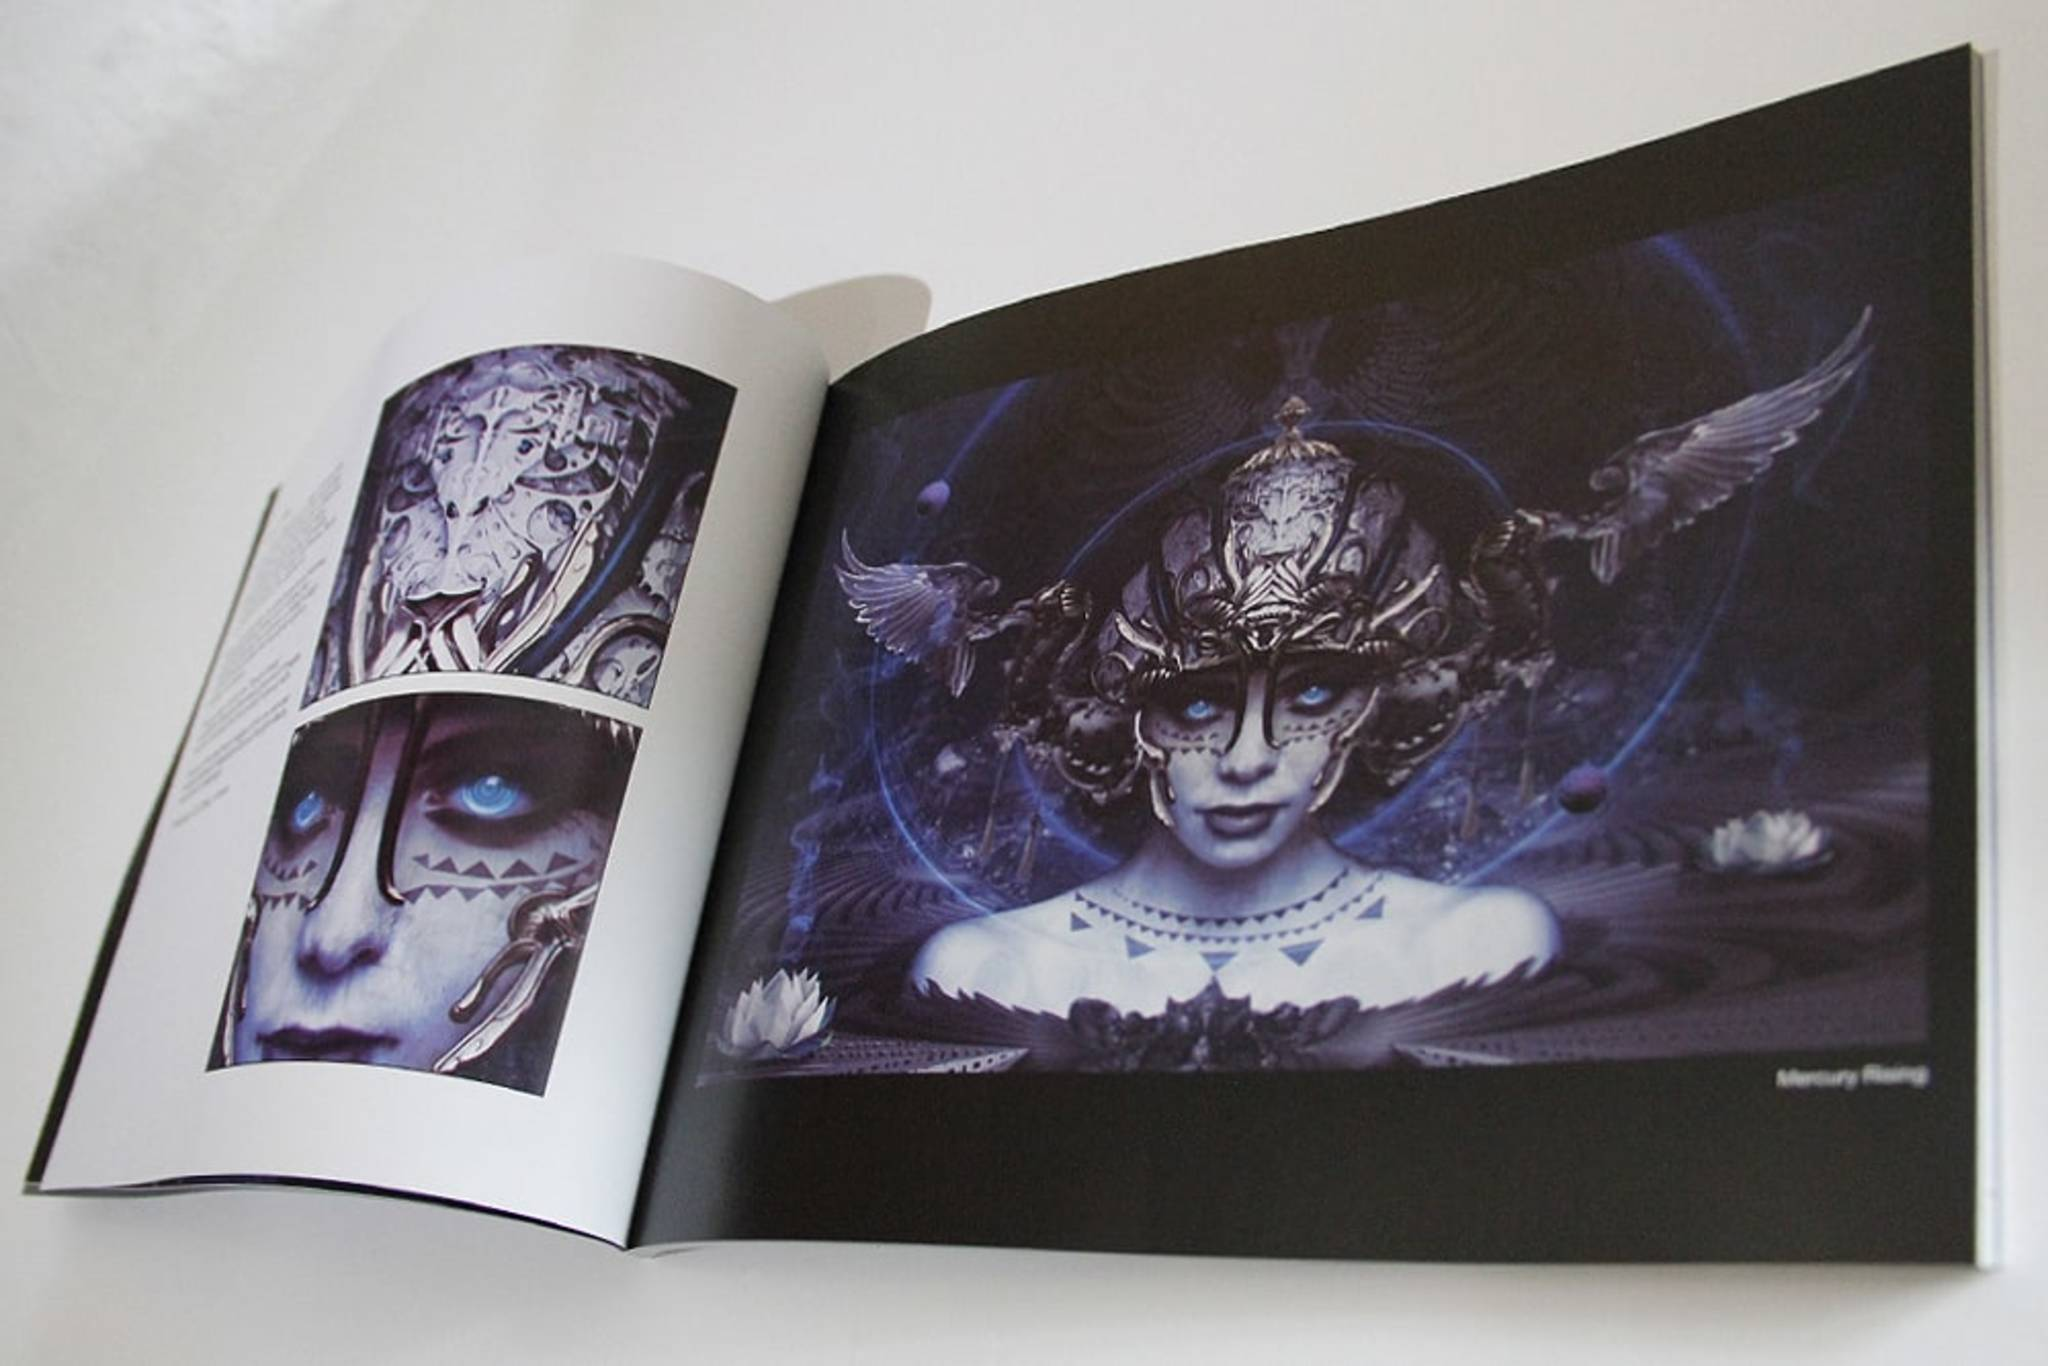 artbook transgenetic metahuman 4